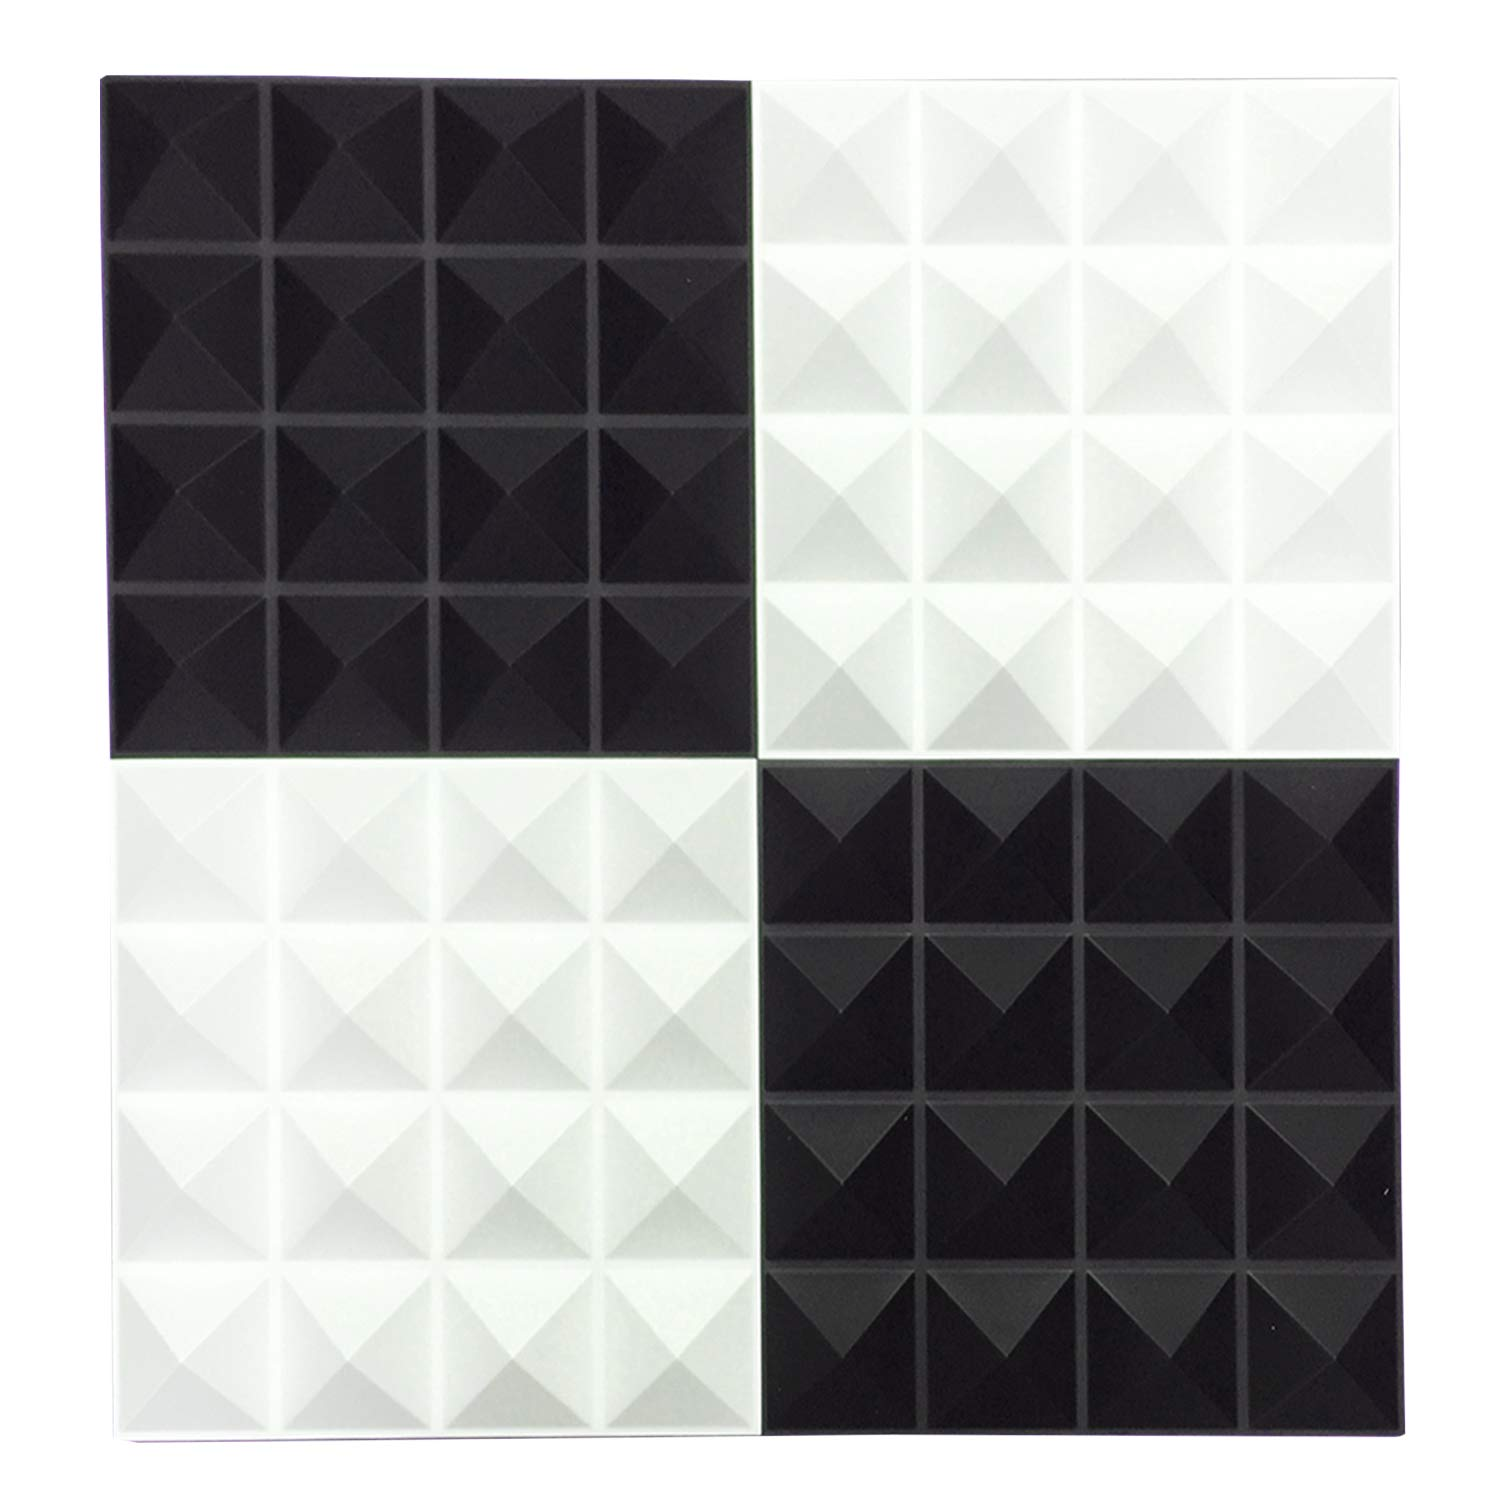 TroyStudio Acoustic Sound Diffuser Panel - Multiple Colors, 12'' X 12'' X 1'', PACK of 4 (White) by TroyStudio (Image #3)